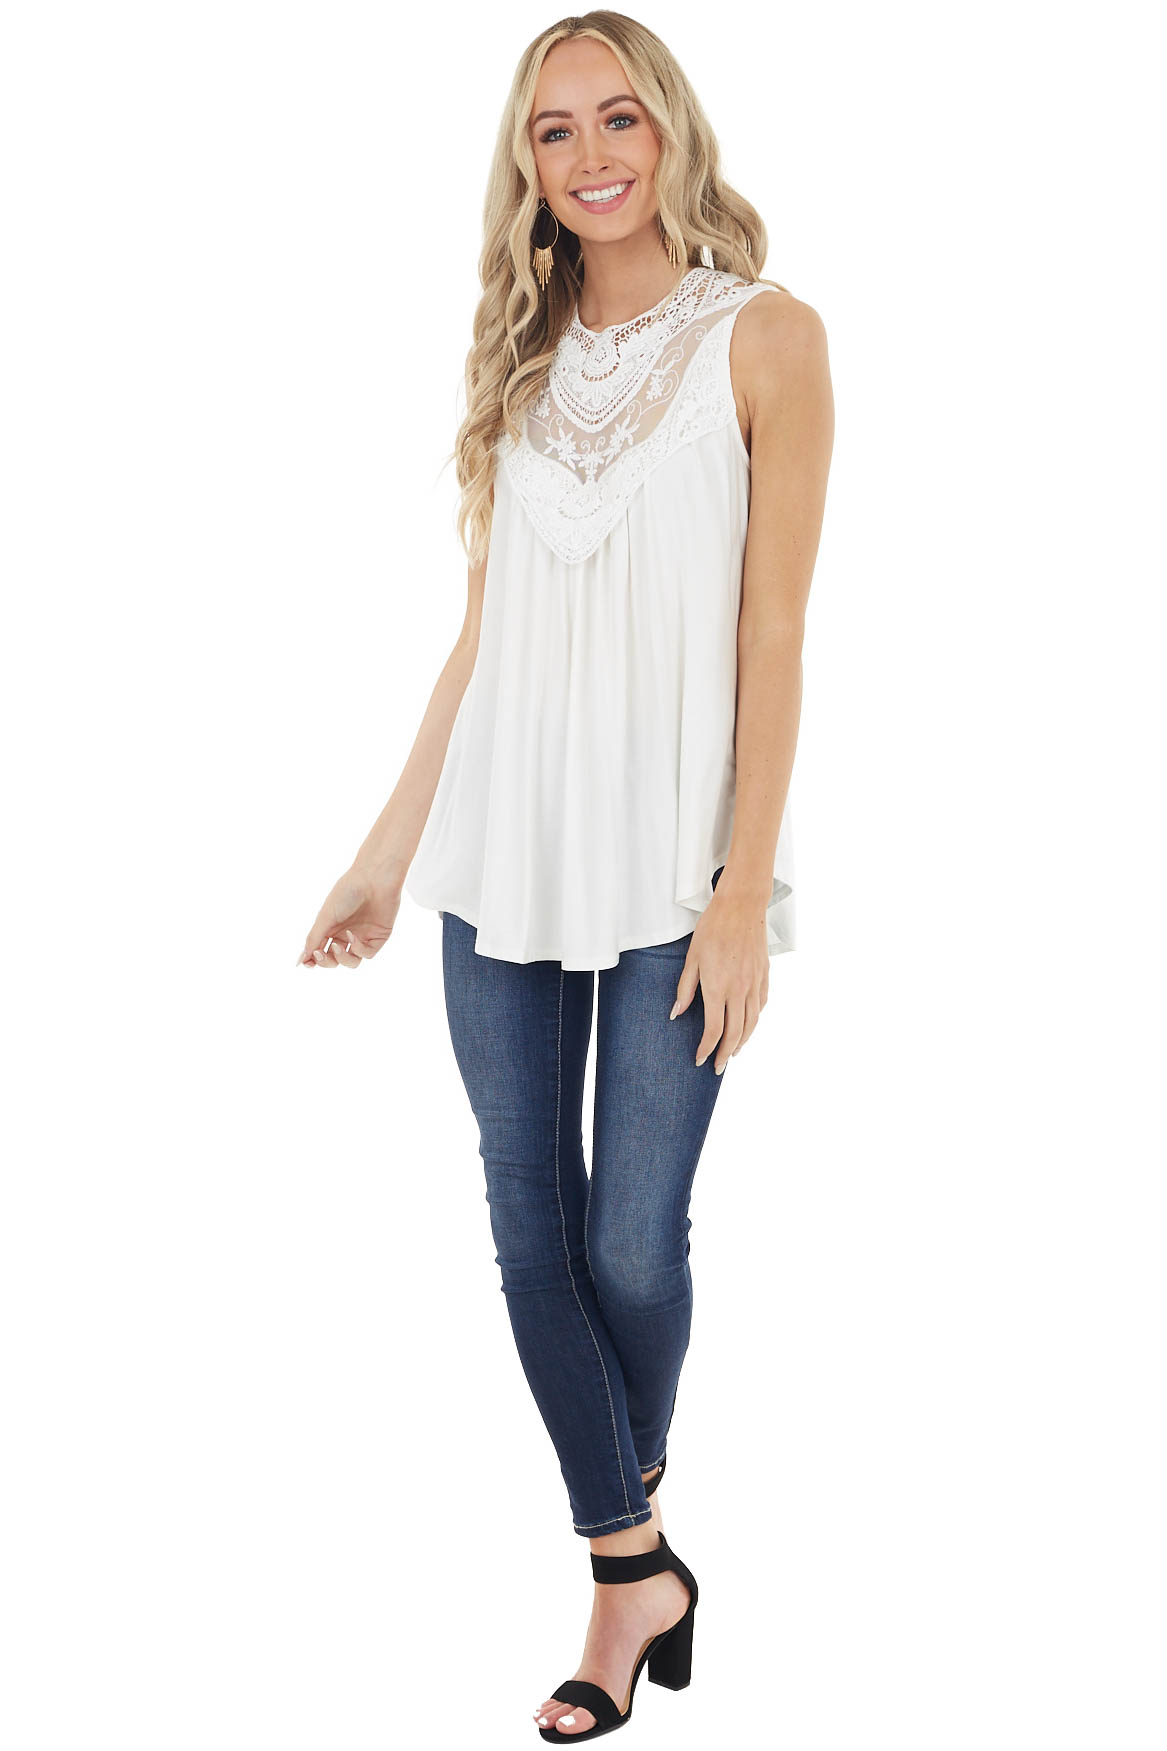 Off White Flowy Sleeveless Top with Sheer Crochet Detail